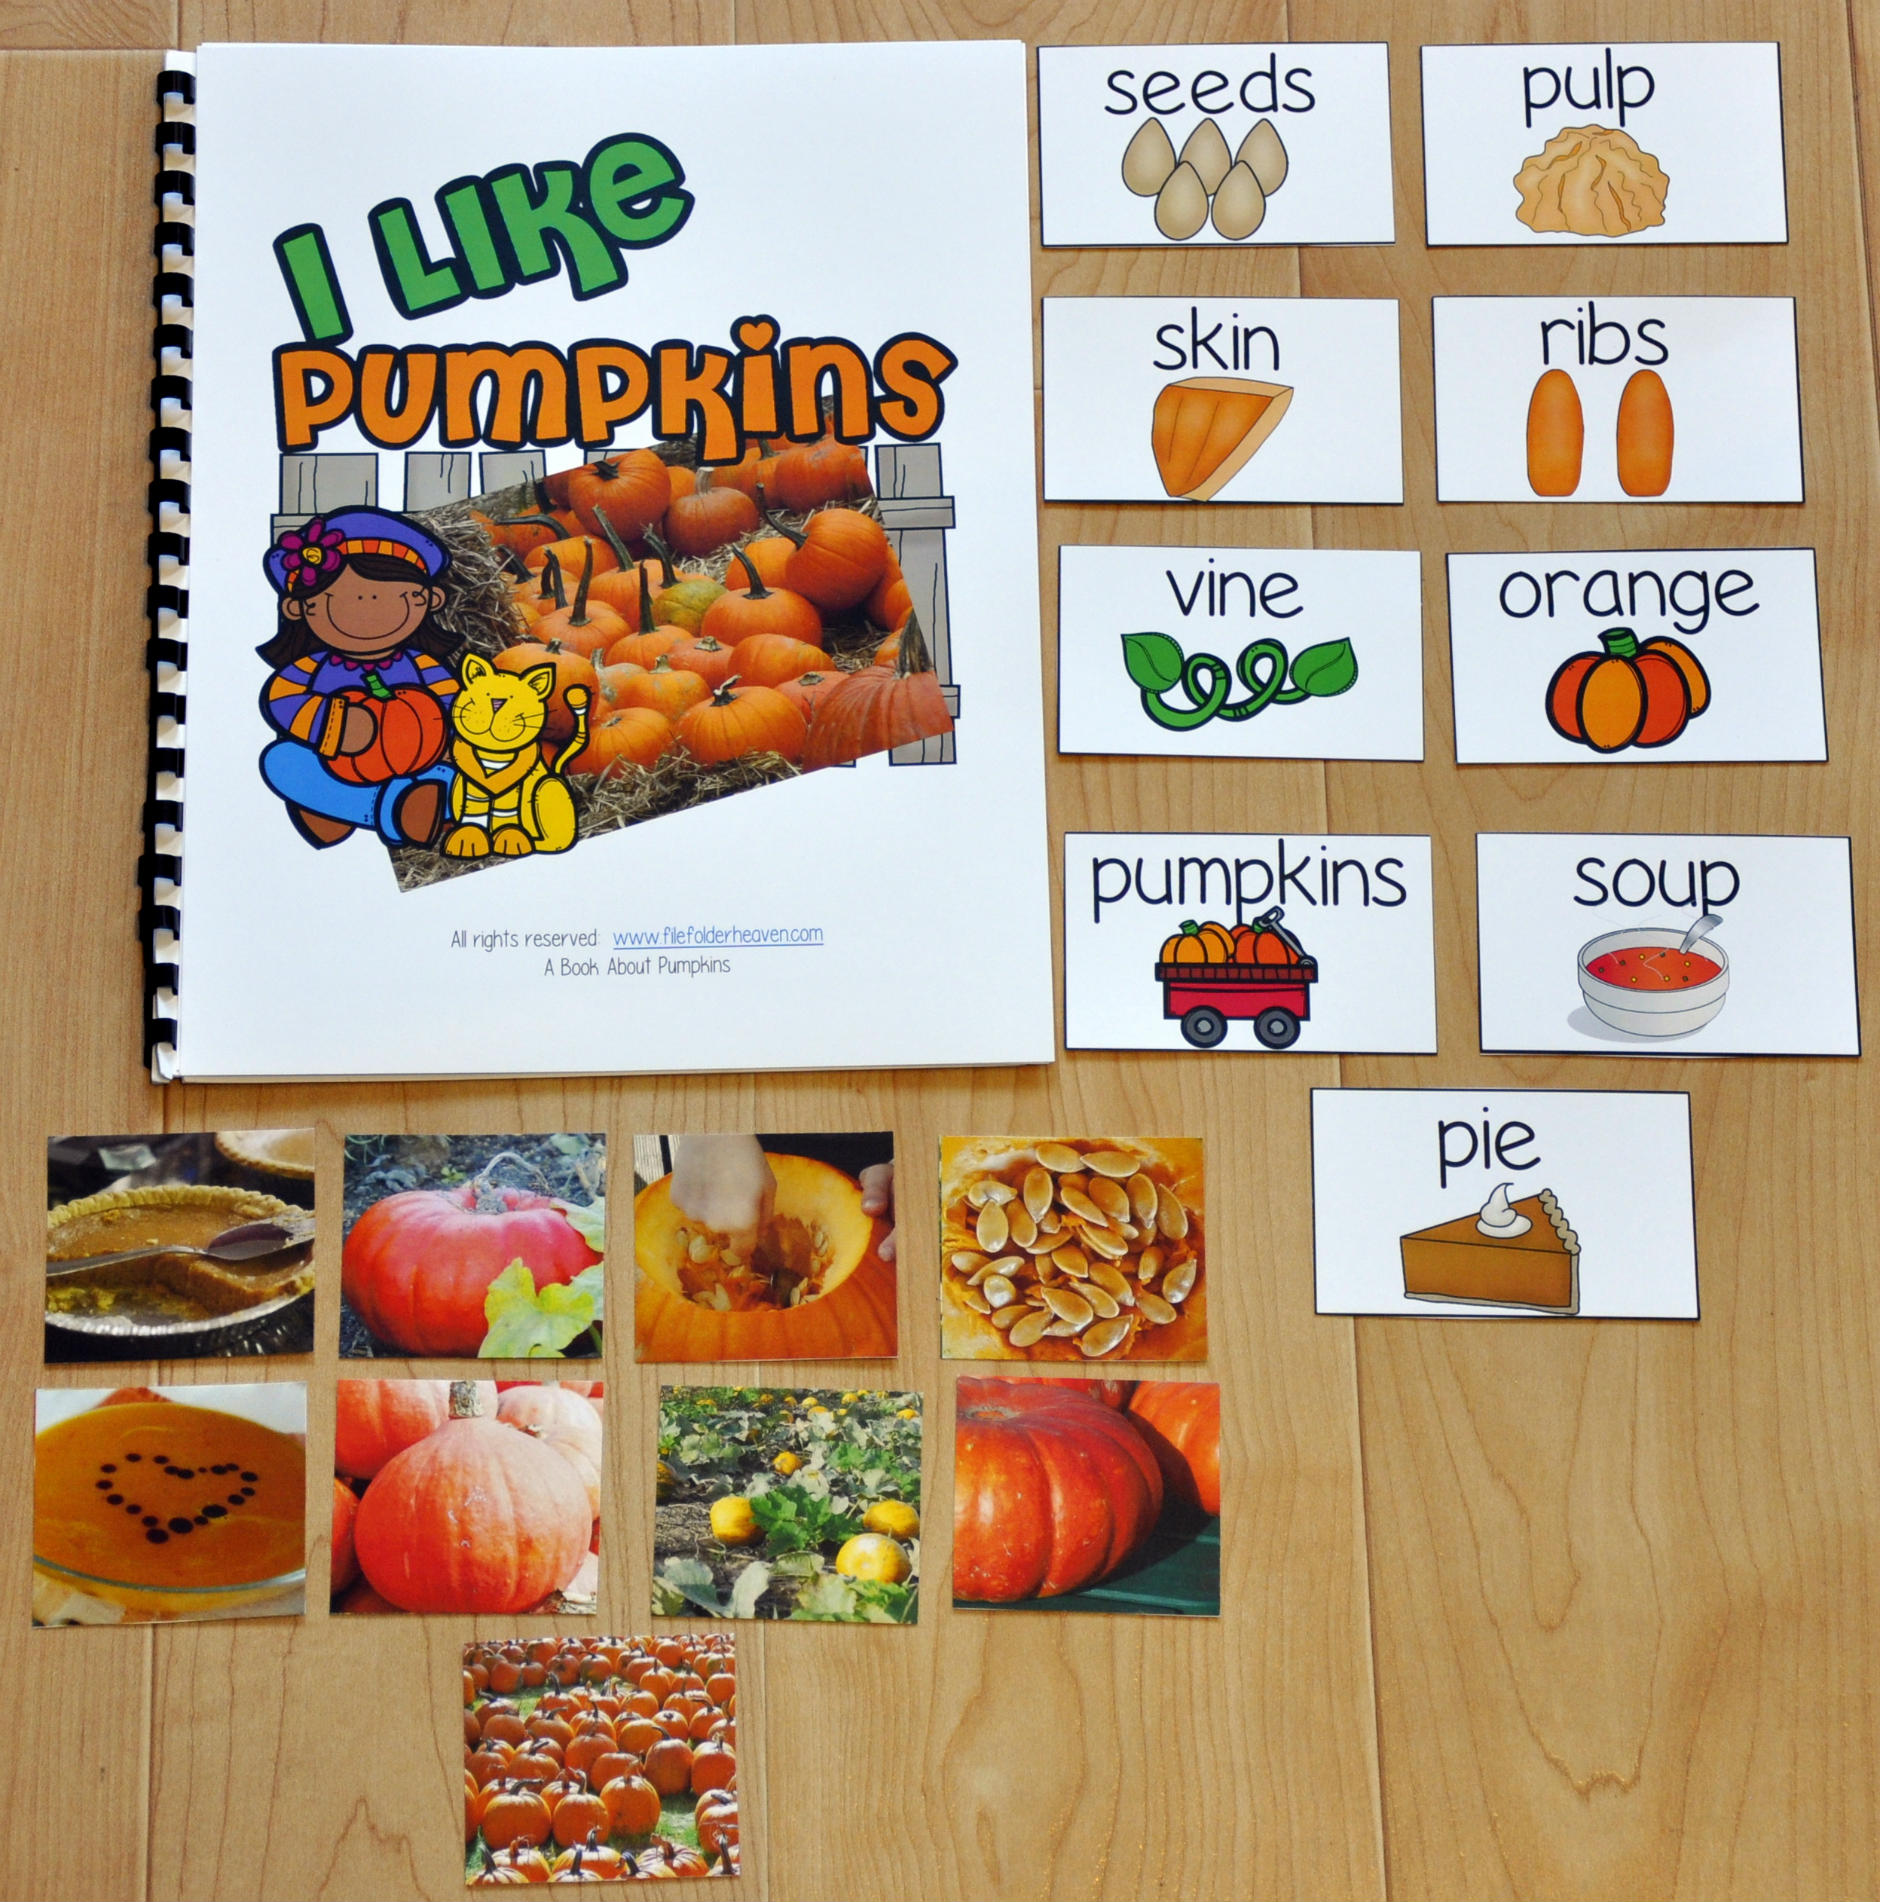 I Like Pumpkins Adapted Book (w/Real Photos)